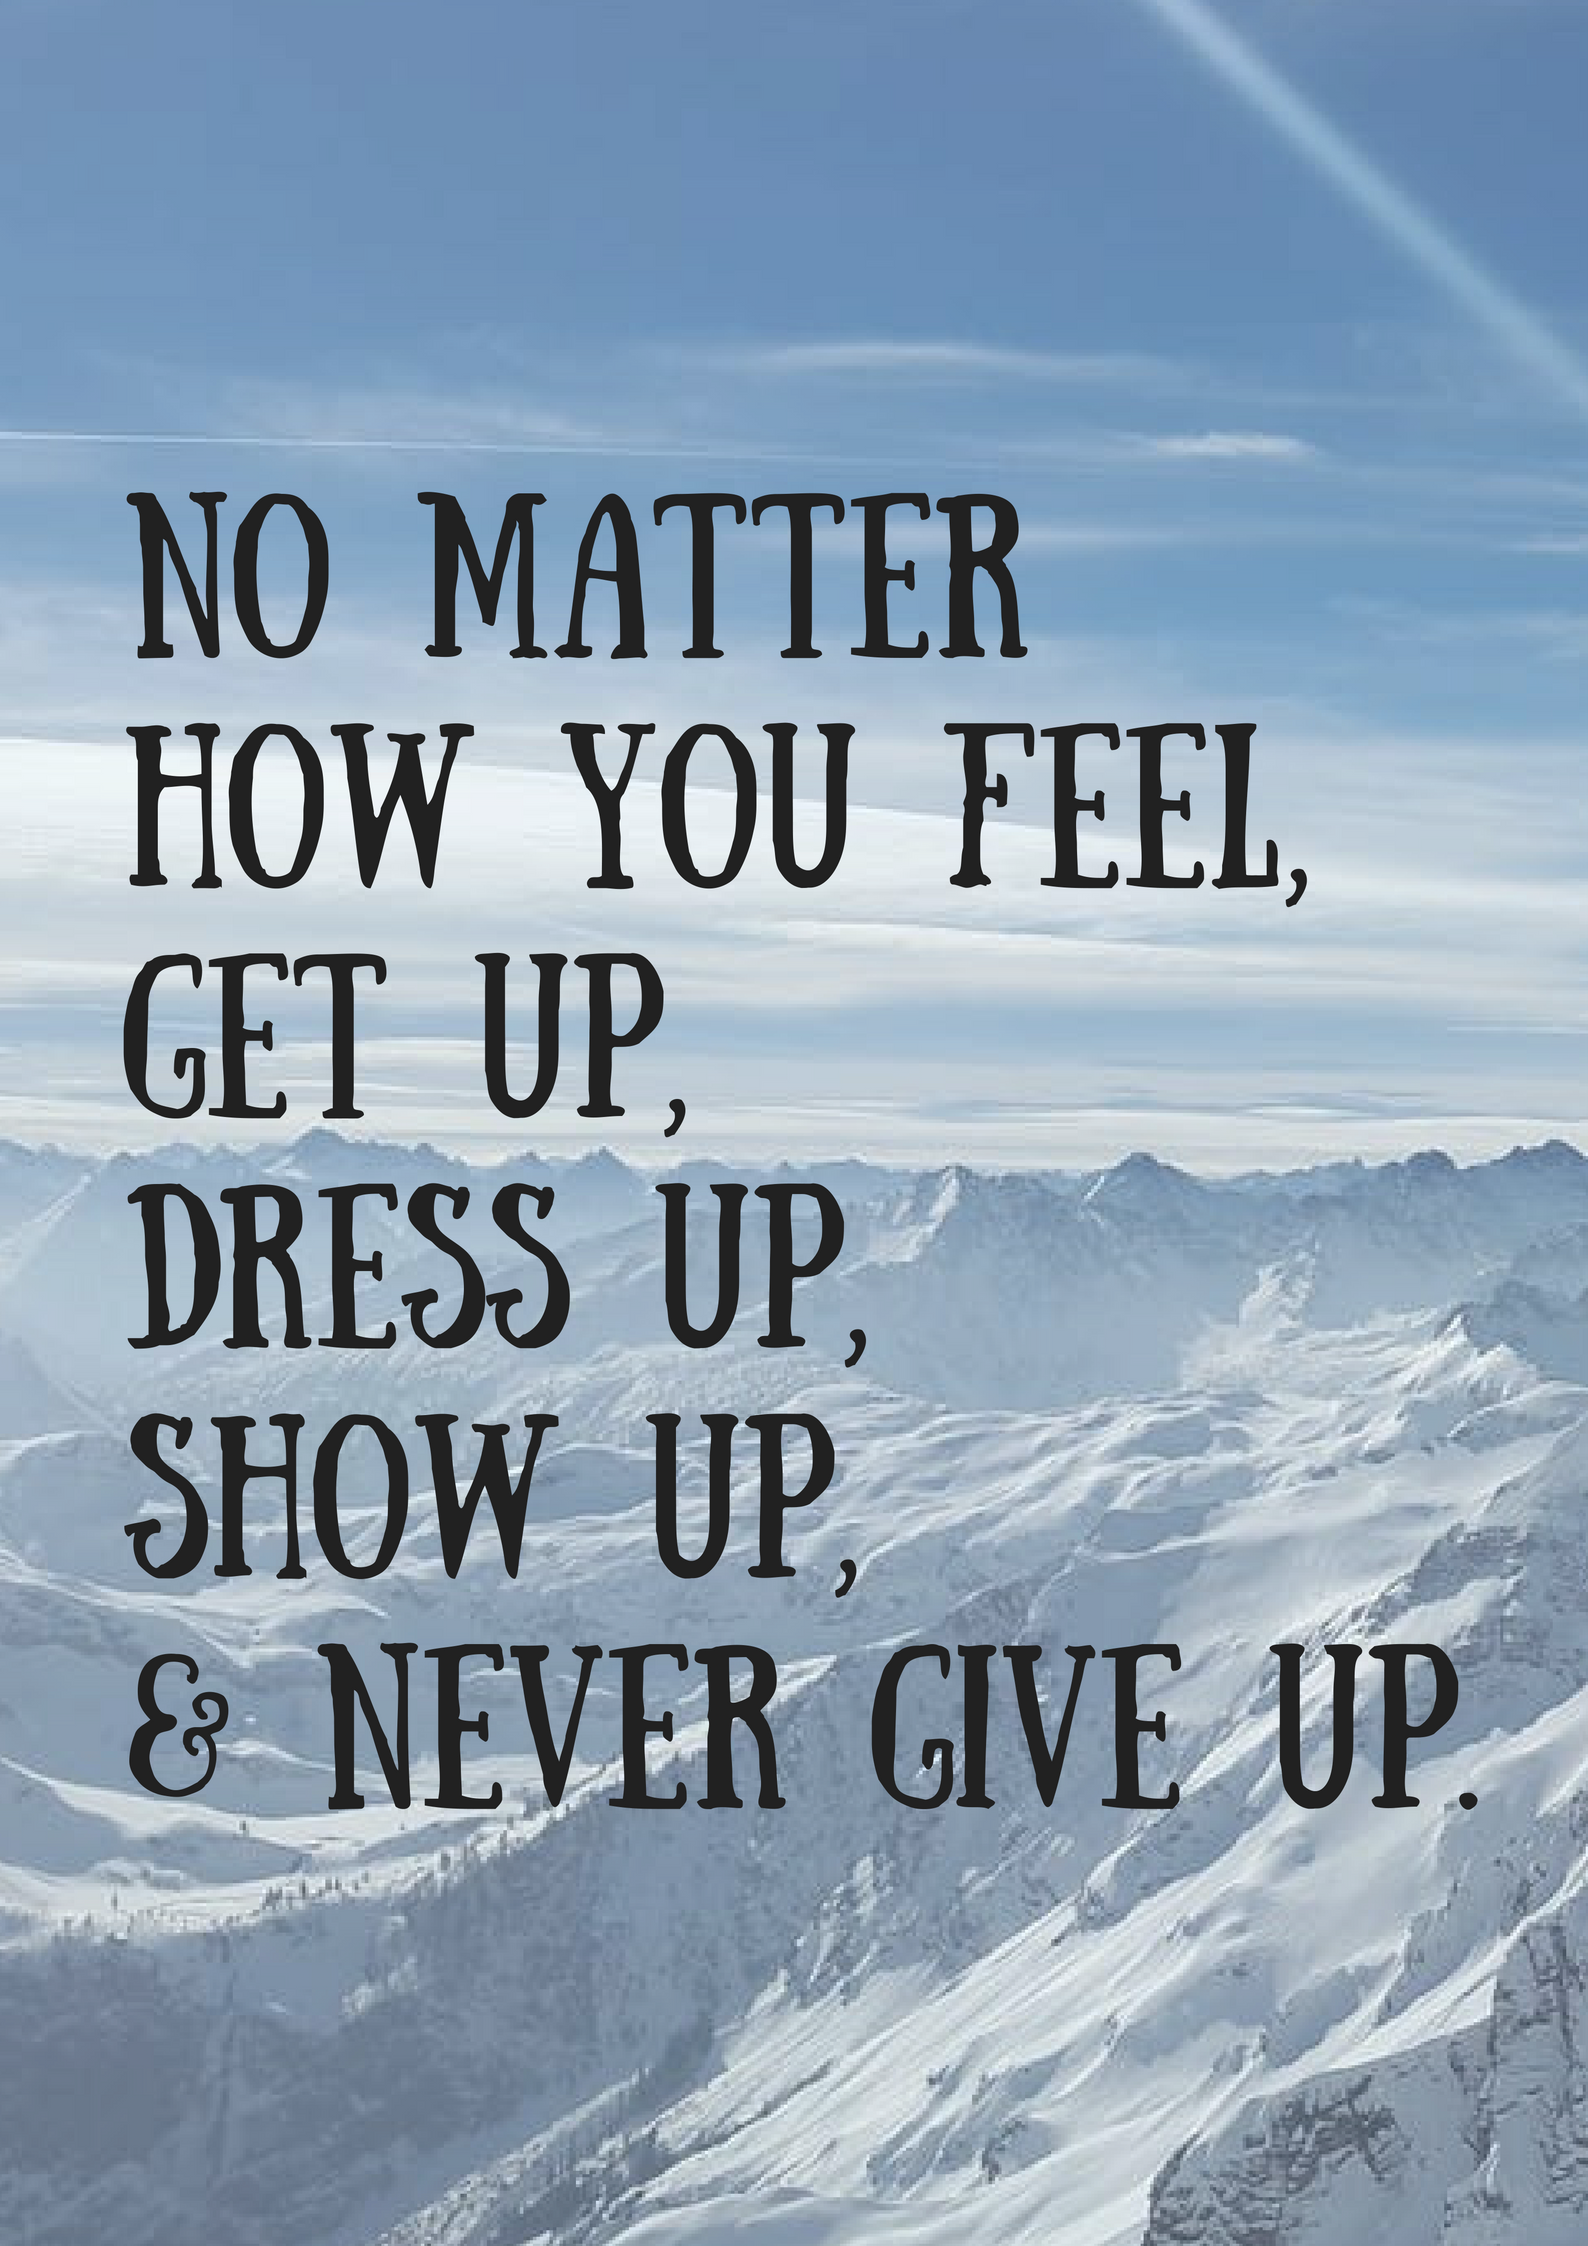 [Image] Get Up, Dress Up, Show Up